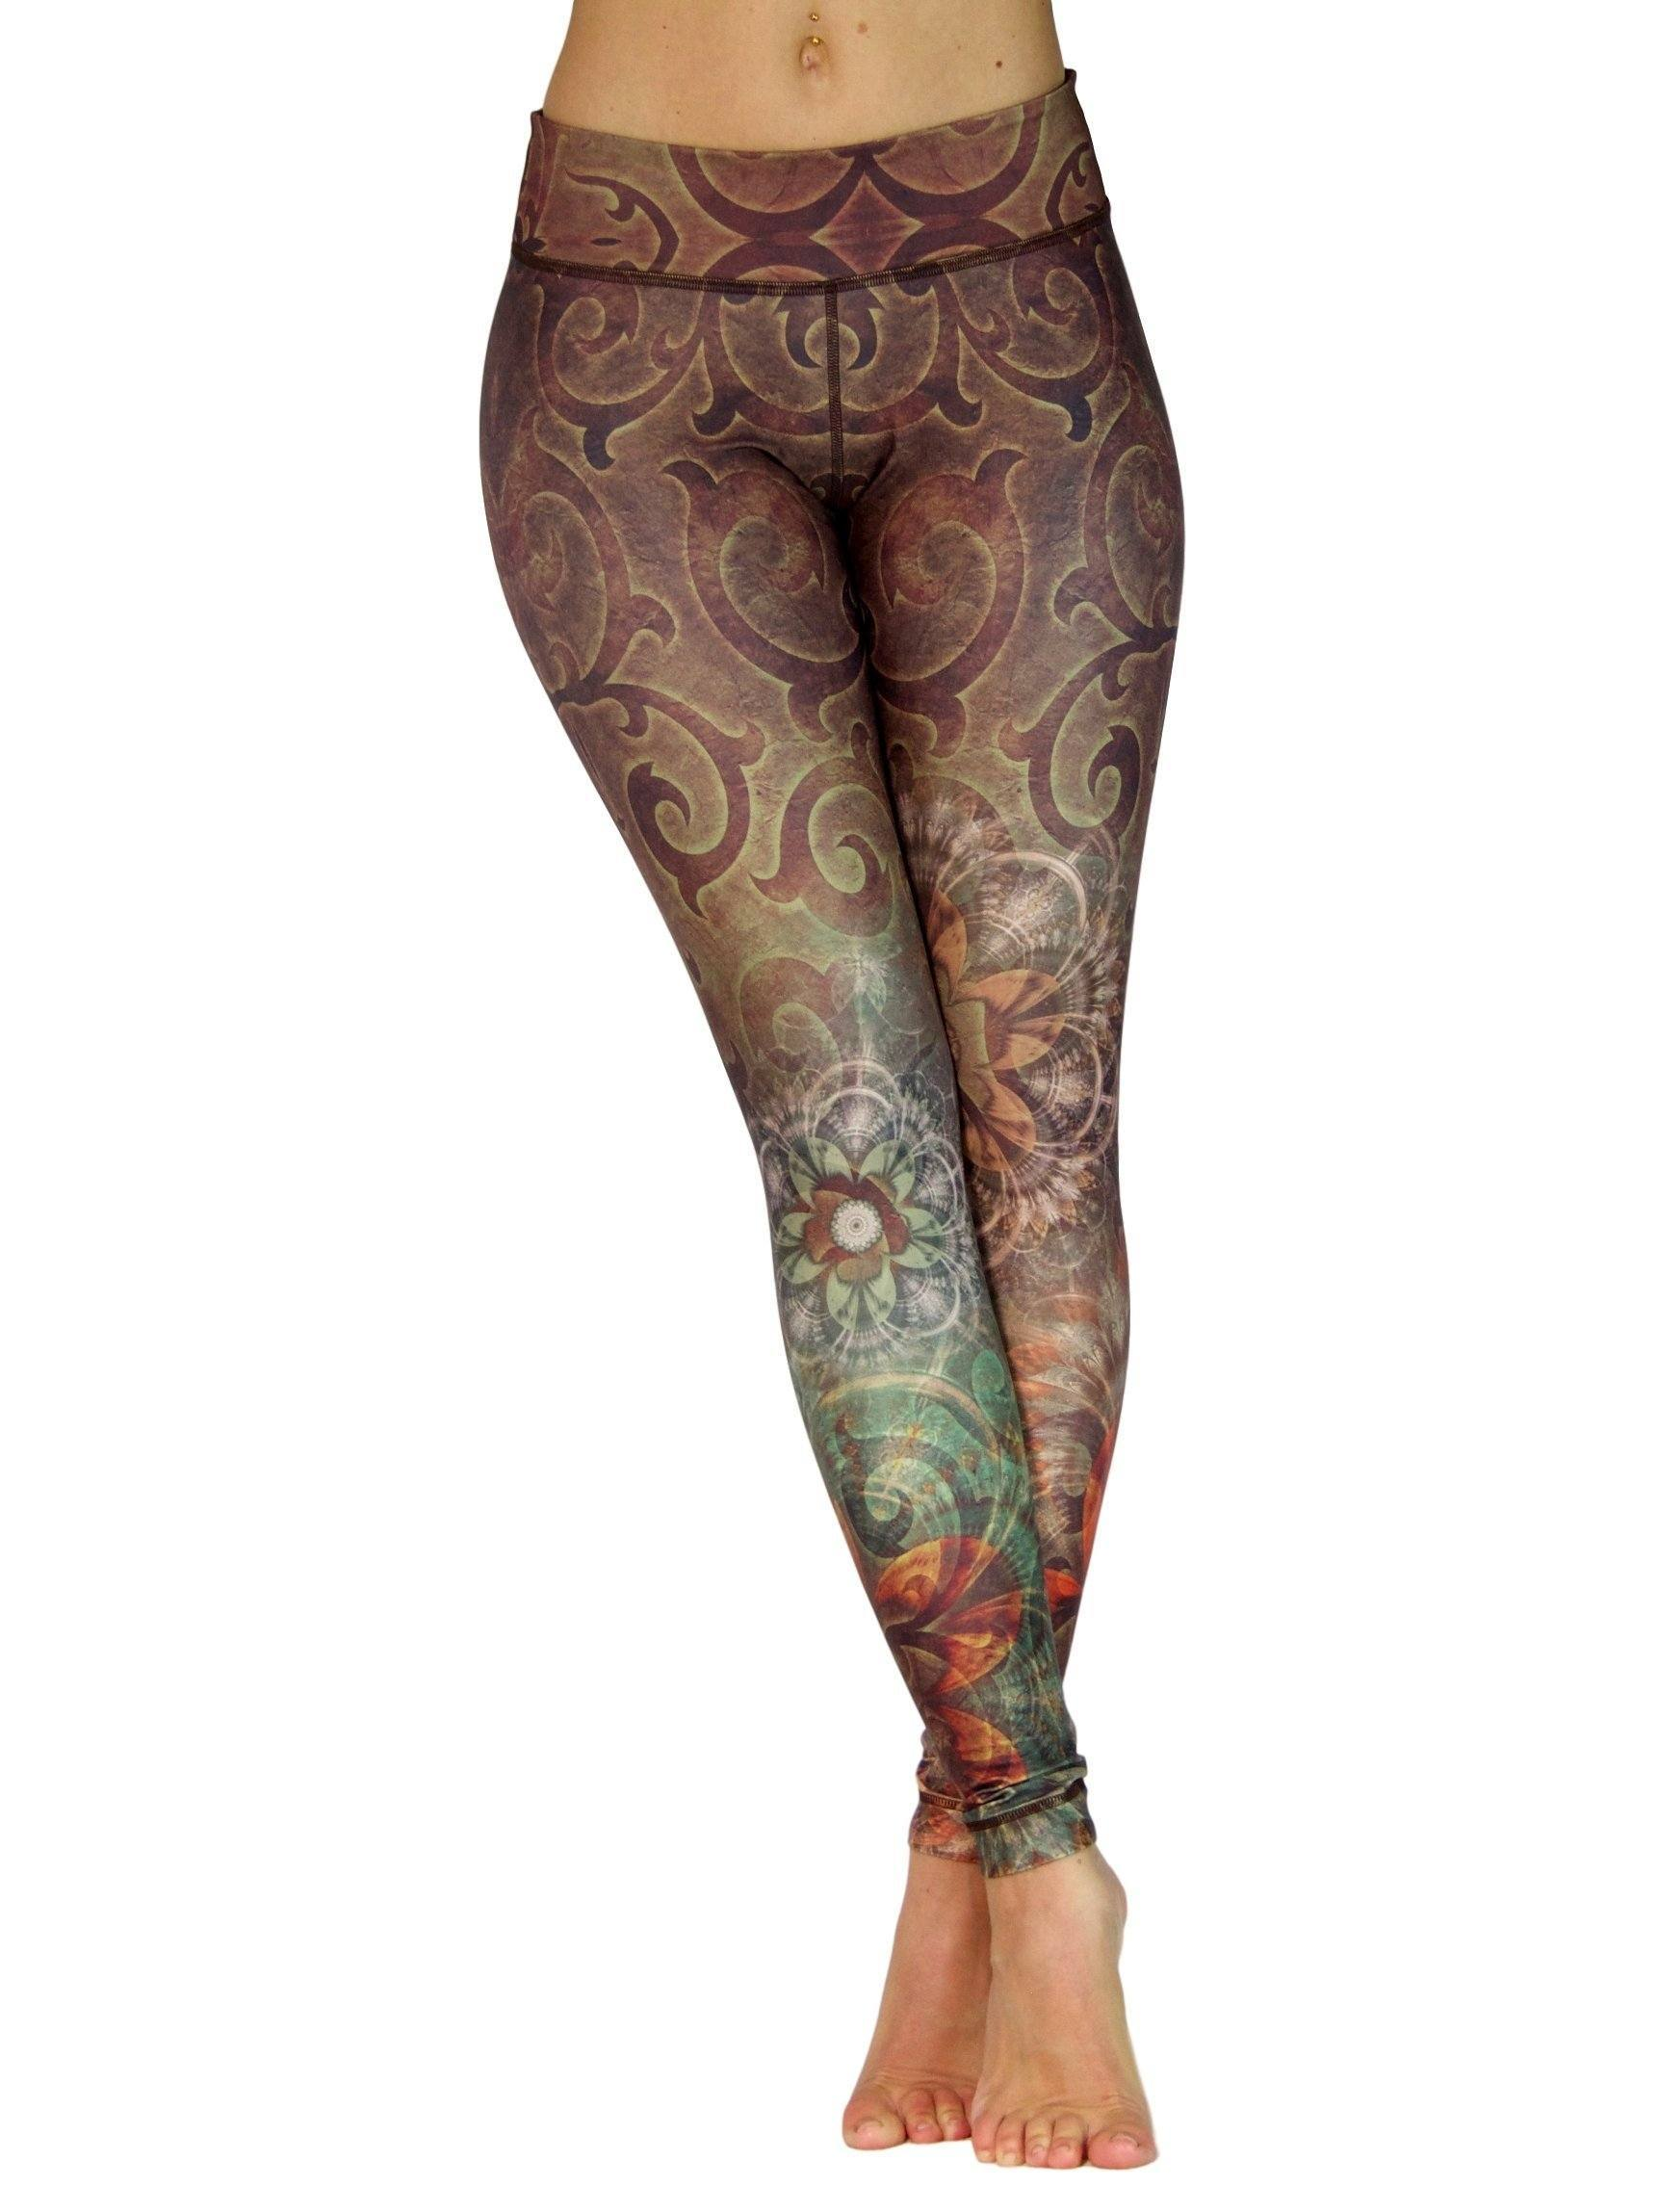 Mountain Meadow by Niyama - High Quality, , Yoga Legging for Movement Artists.